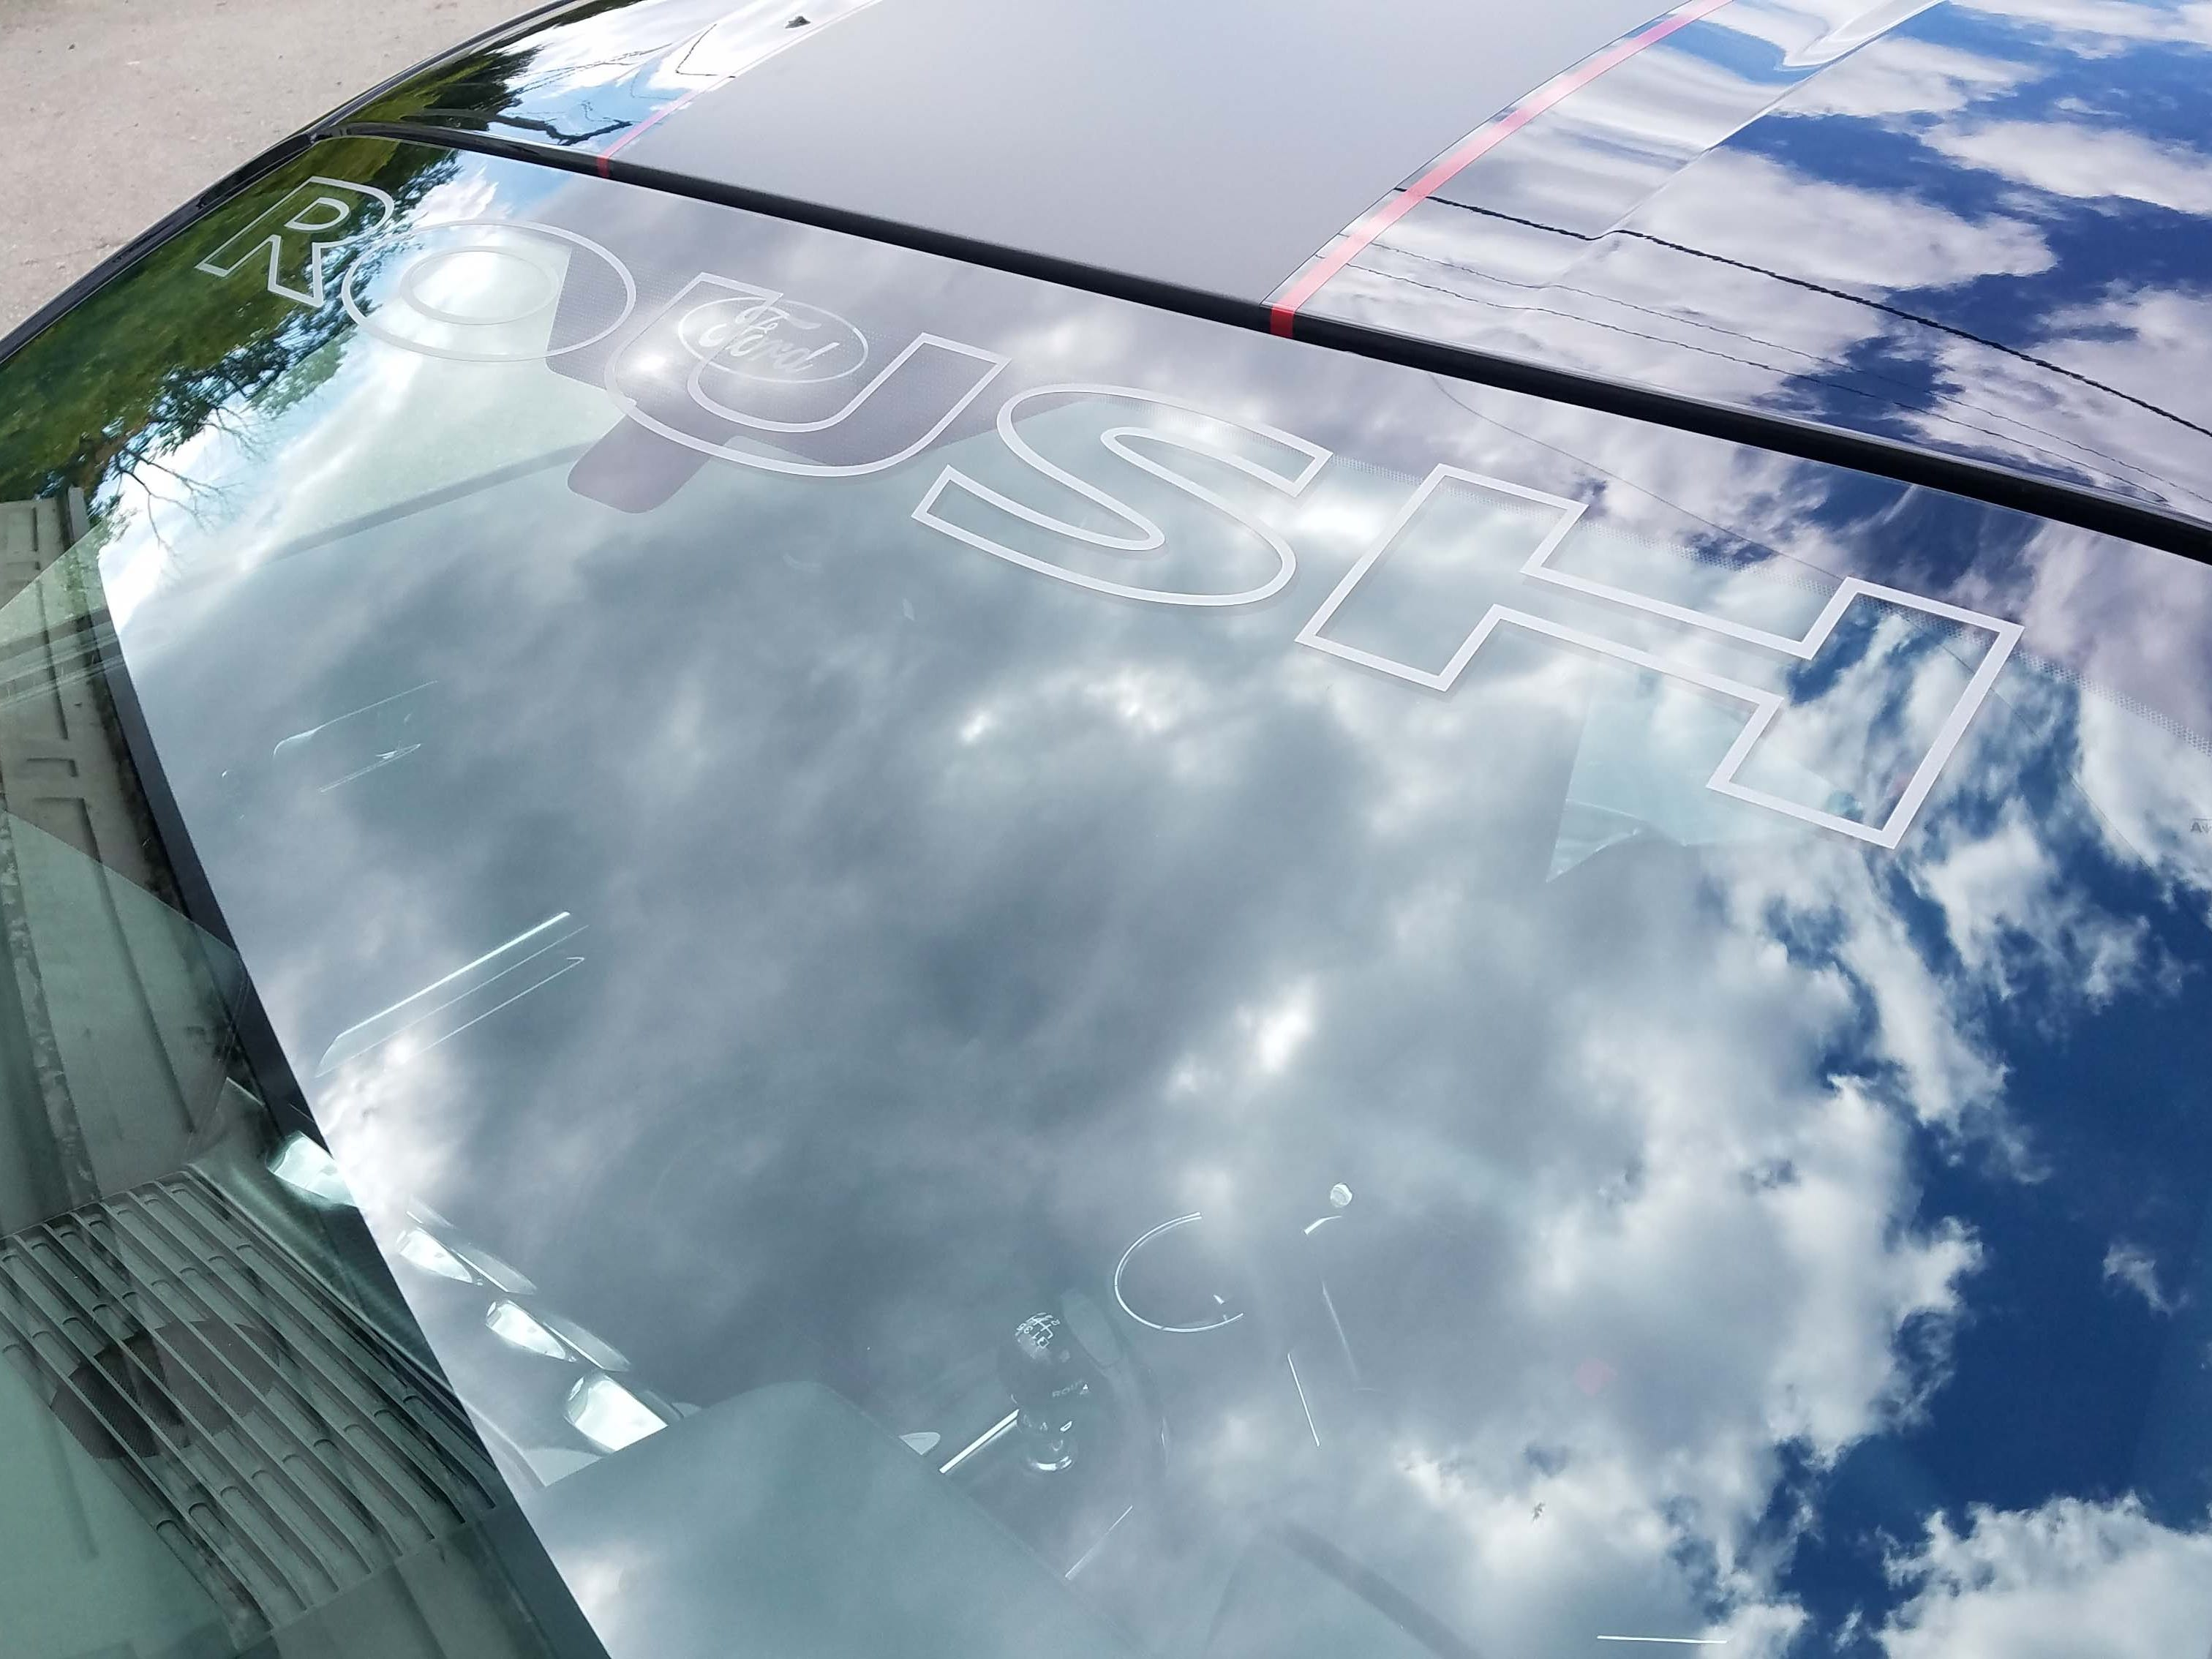 Roush windshield graphic. Standard on the 2018 Roush Jackhammer Mustang. A top performance stripe is optional.